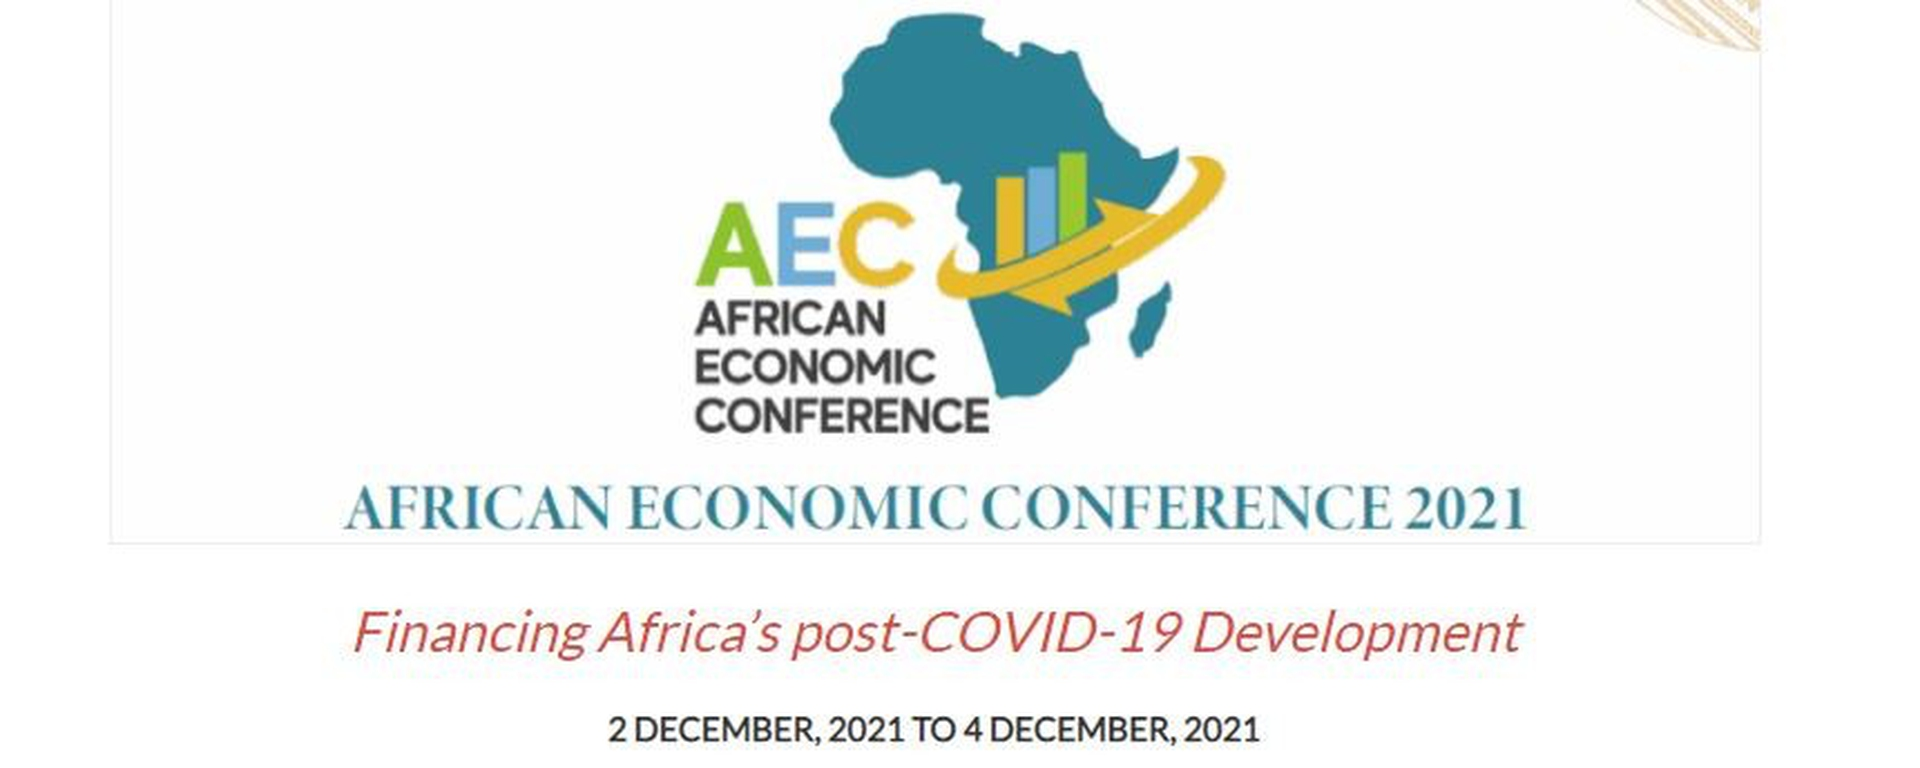 African Development Bank - African Economic Conference 2021 Movemeback African event cover image